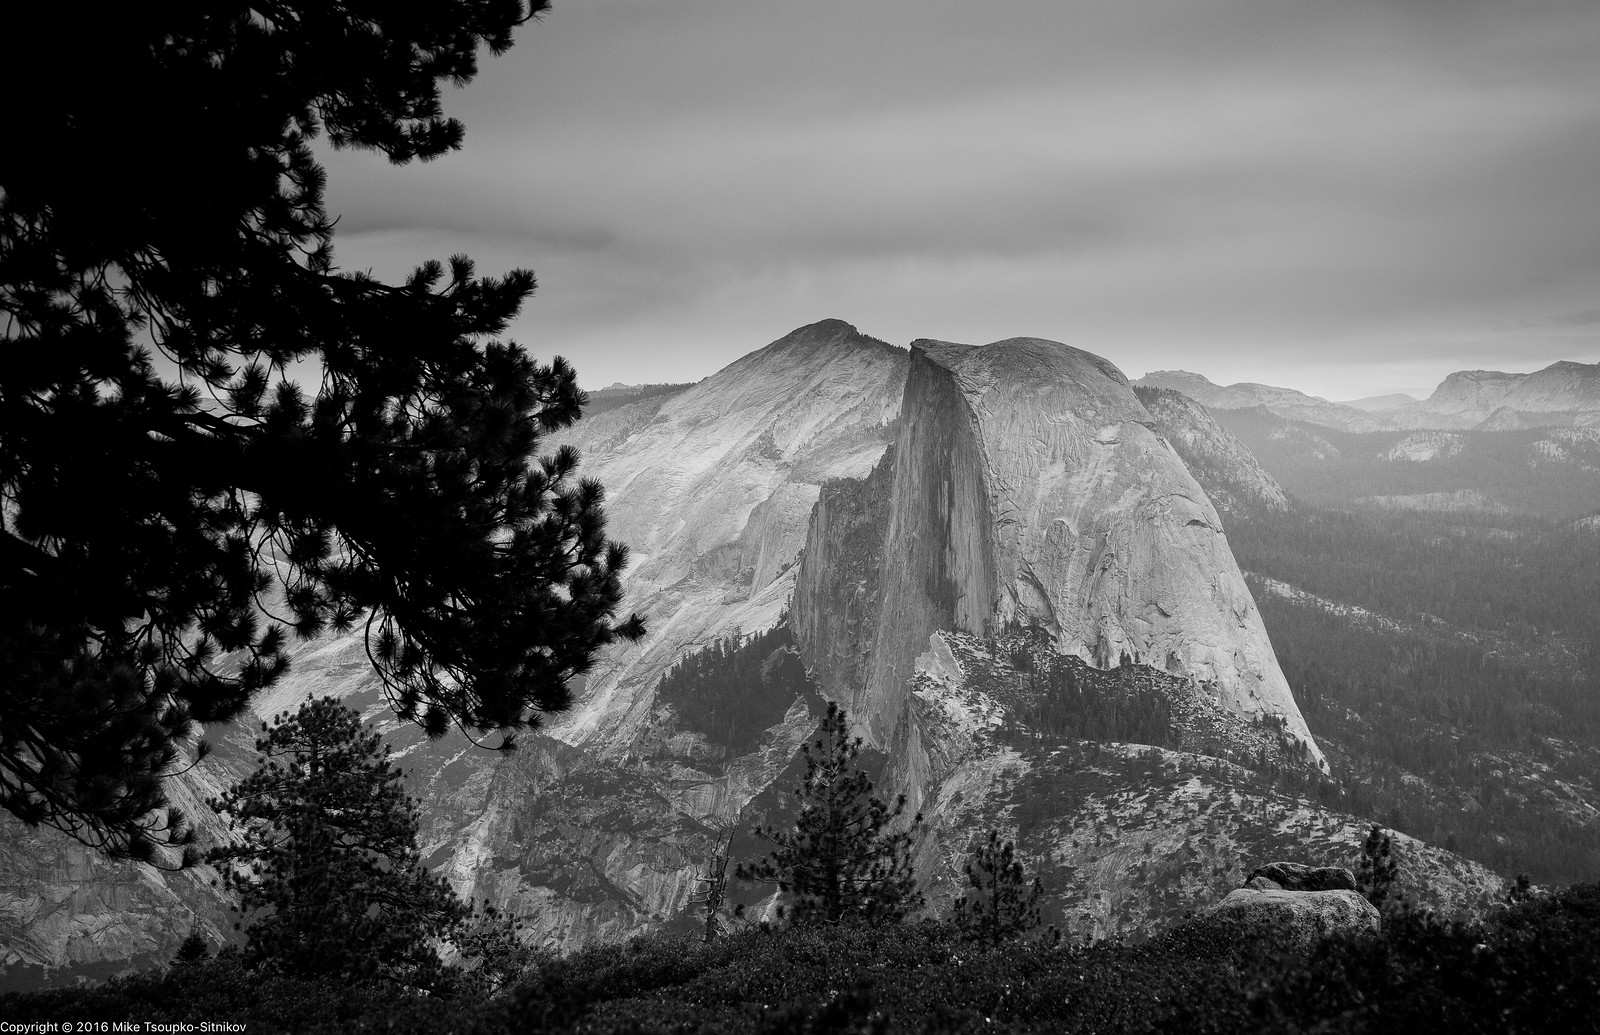 A View from Sentinel Dome in Yosemite